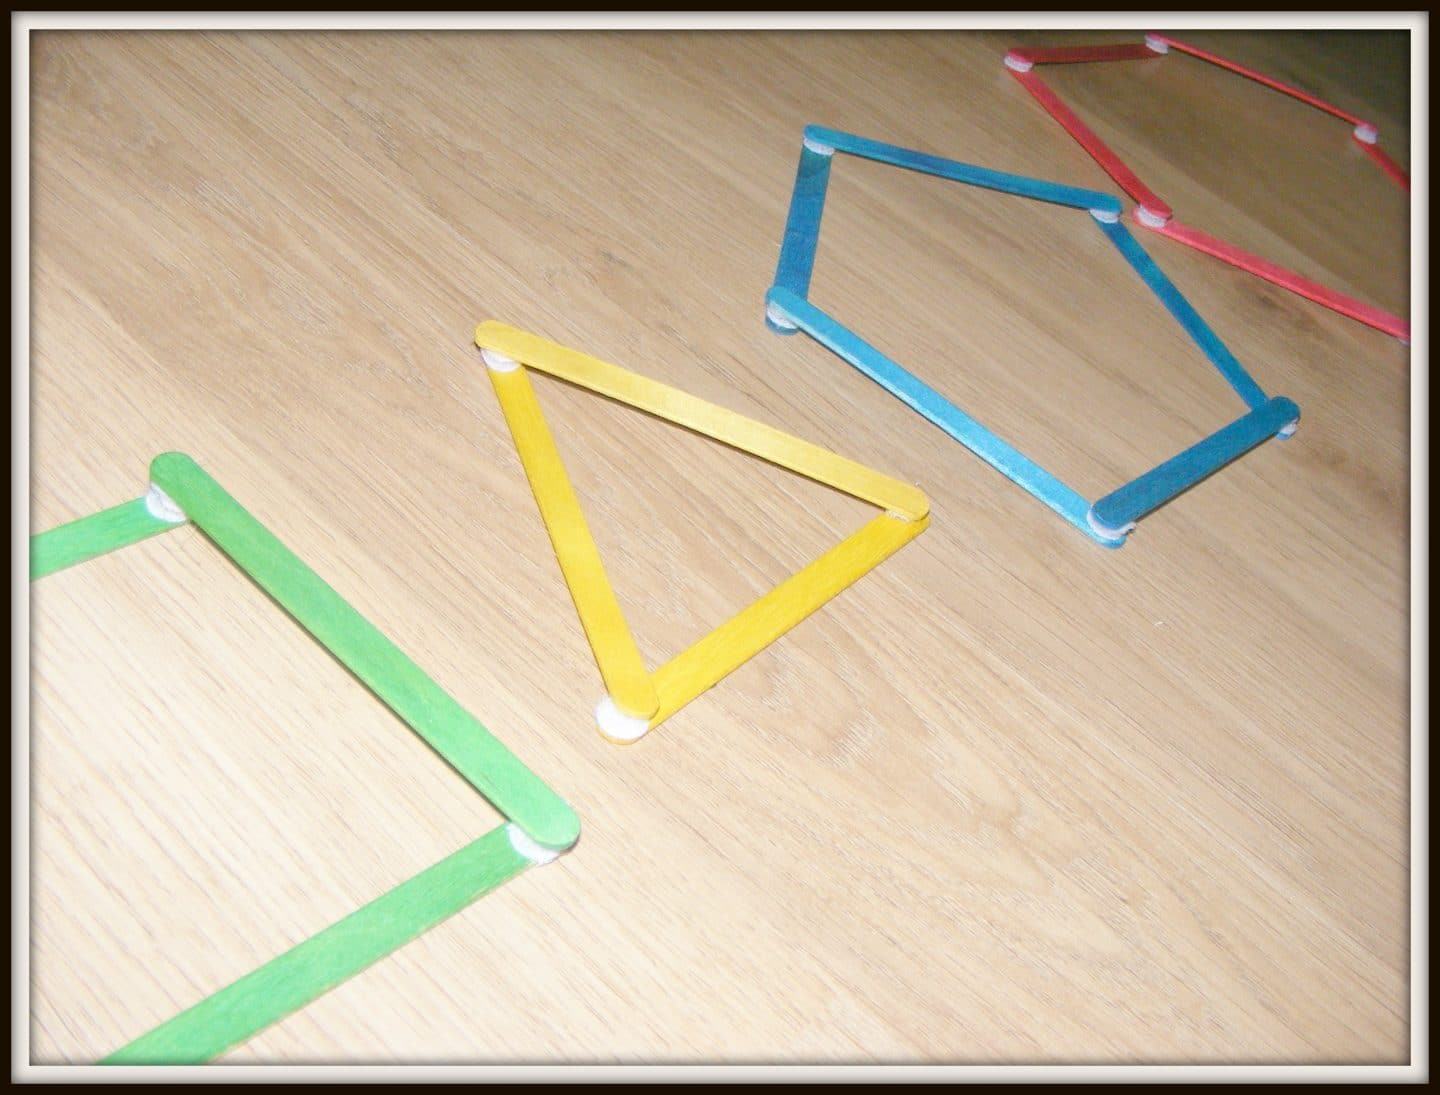 lolly stick shapes with velcro